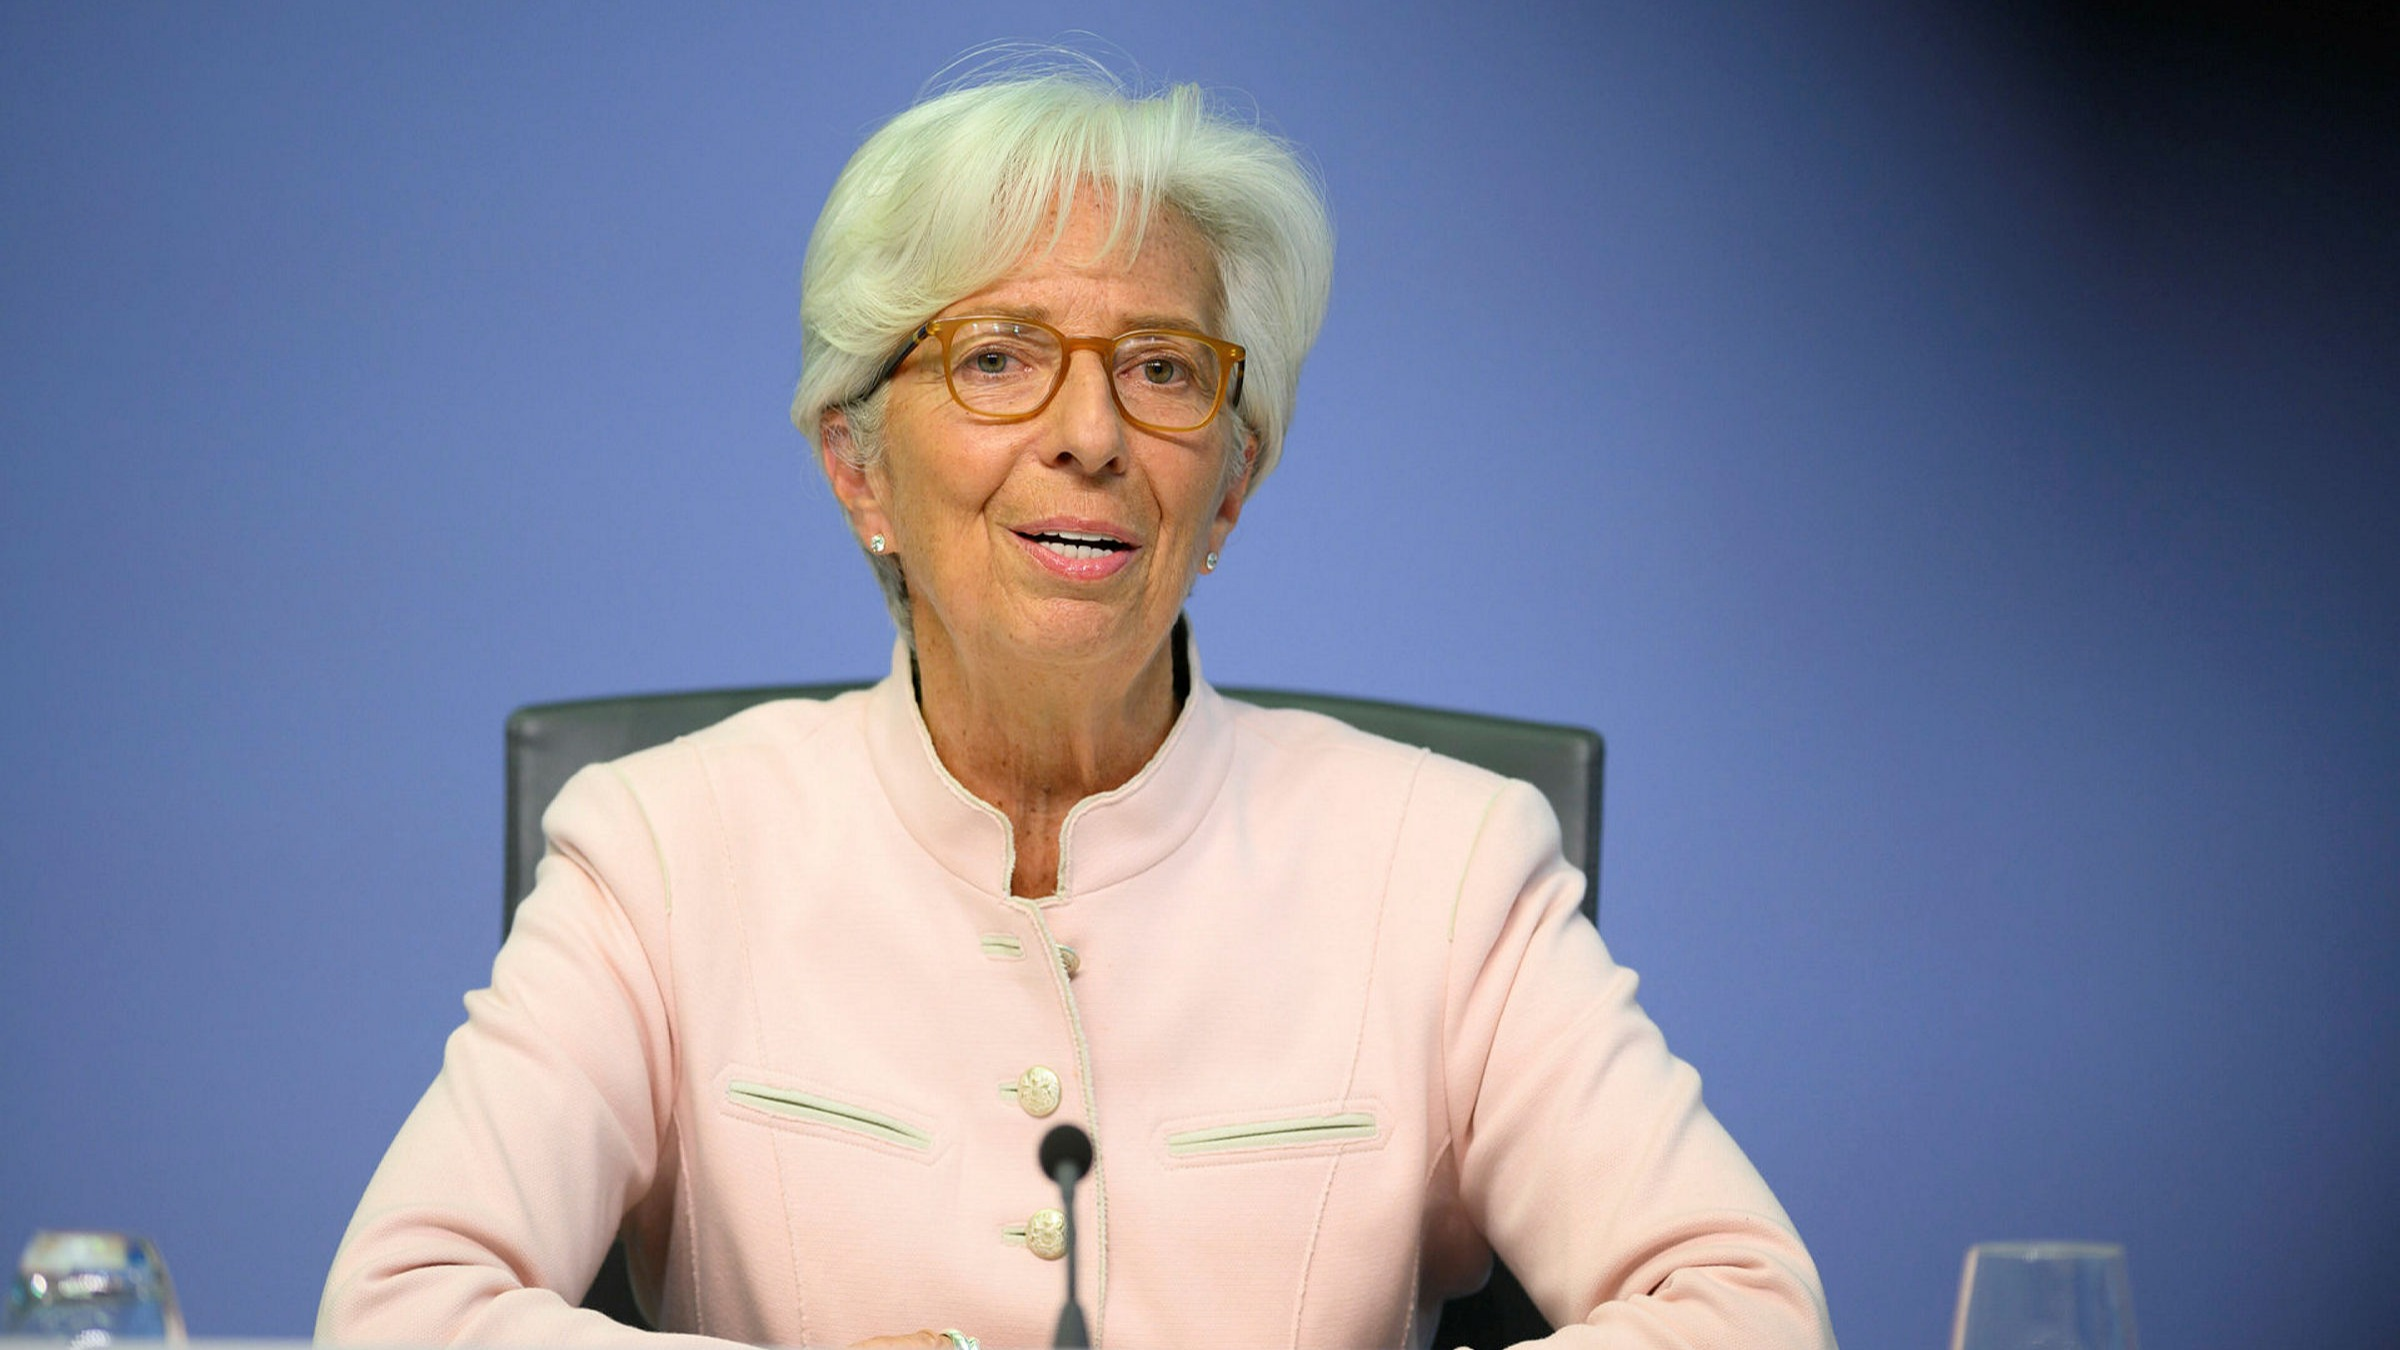 Christine Lagarde, ECB president. If the central bank conducts its policy review and adopts an average target of, say, 2 per cent, it would give itself more flexibility